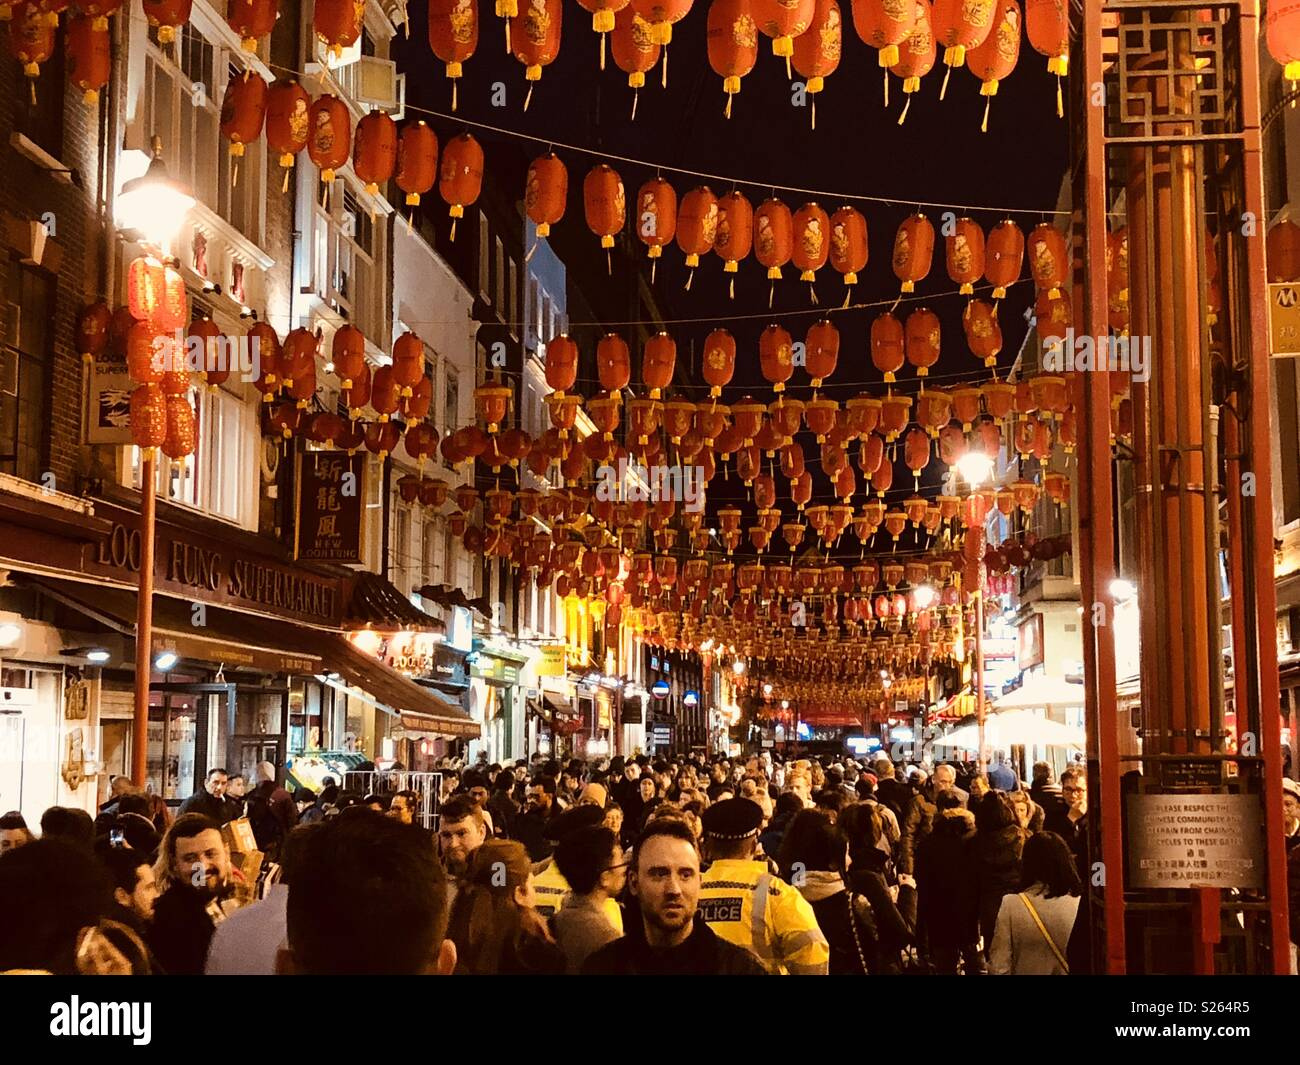 Chinese New year in China town London with hanging lanterns - Stock Image